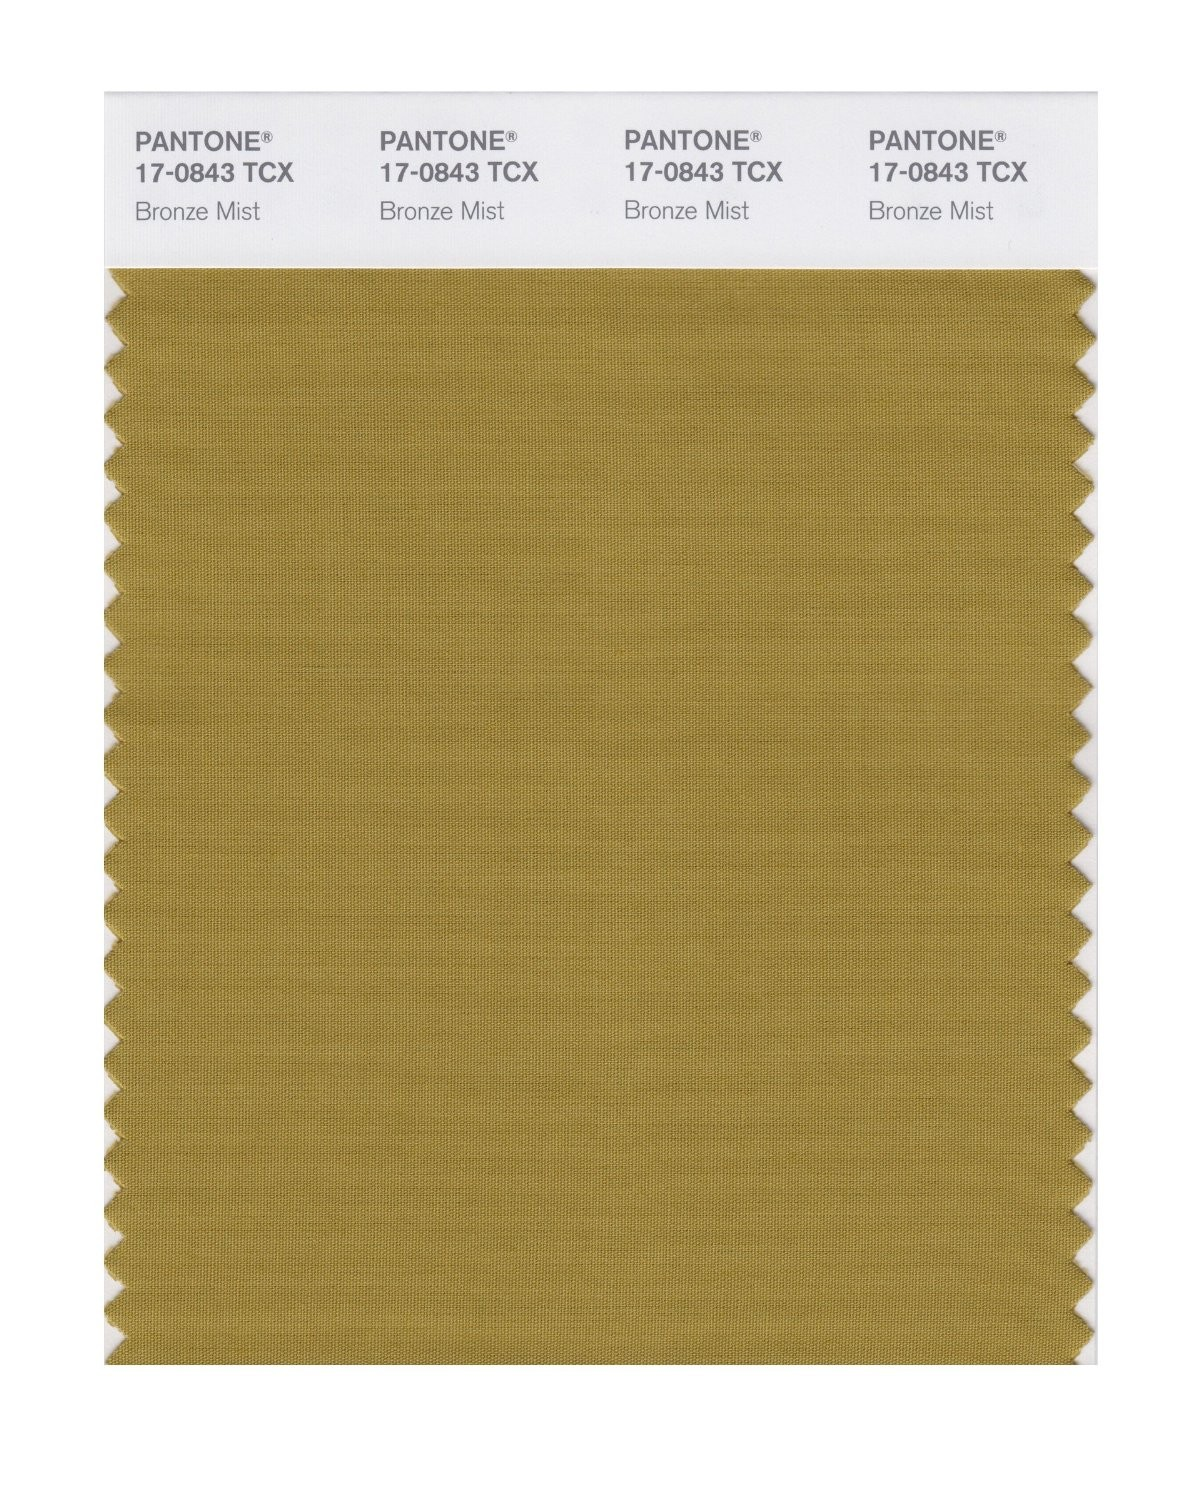 Pantone 17-0843 TCX Swatch Card Bronze Mist